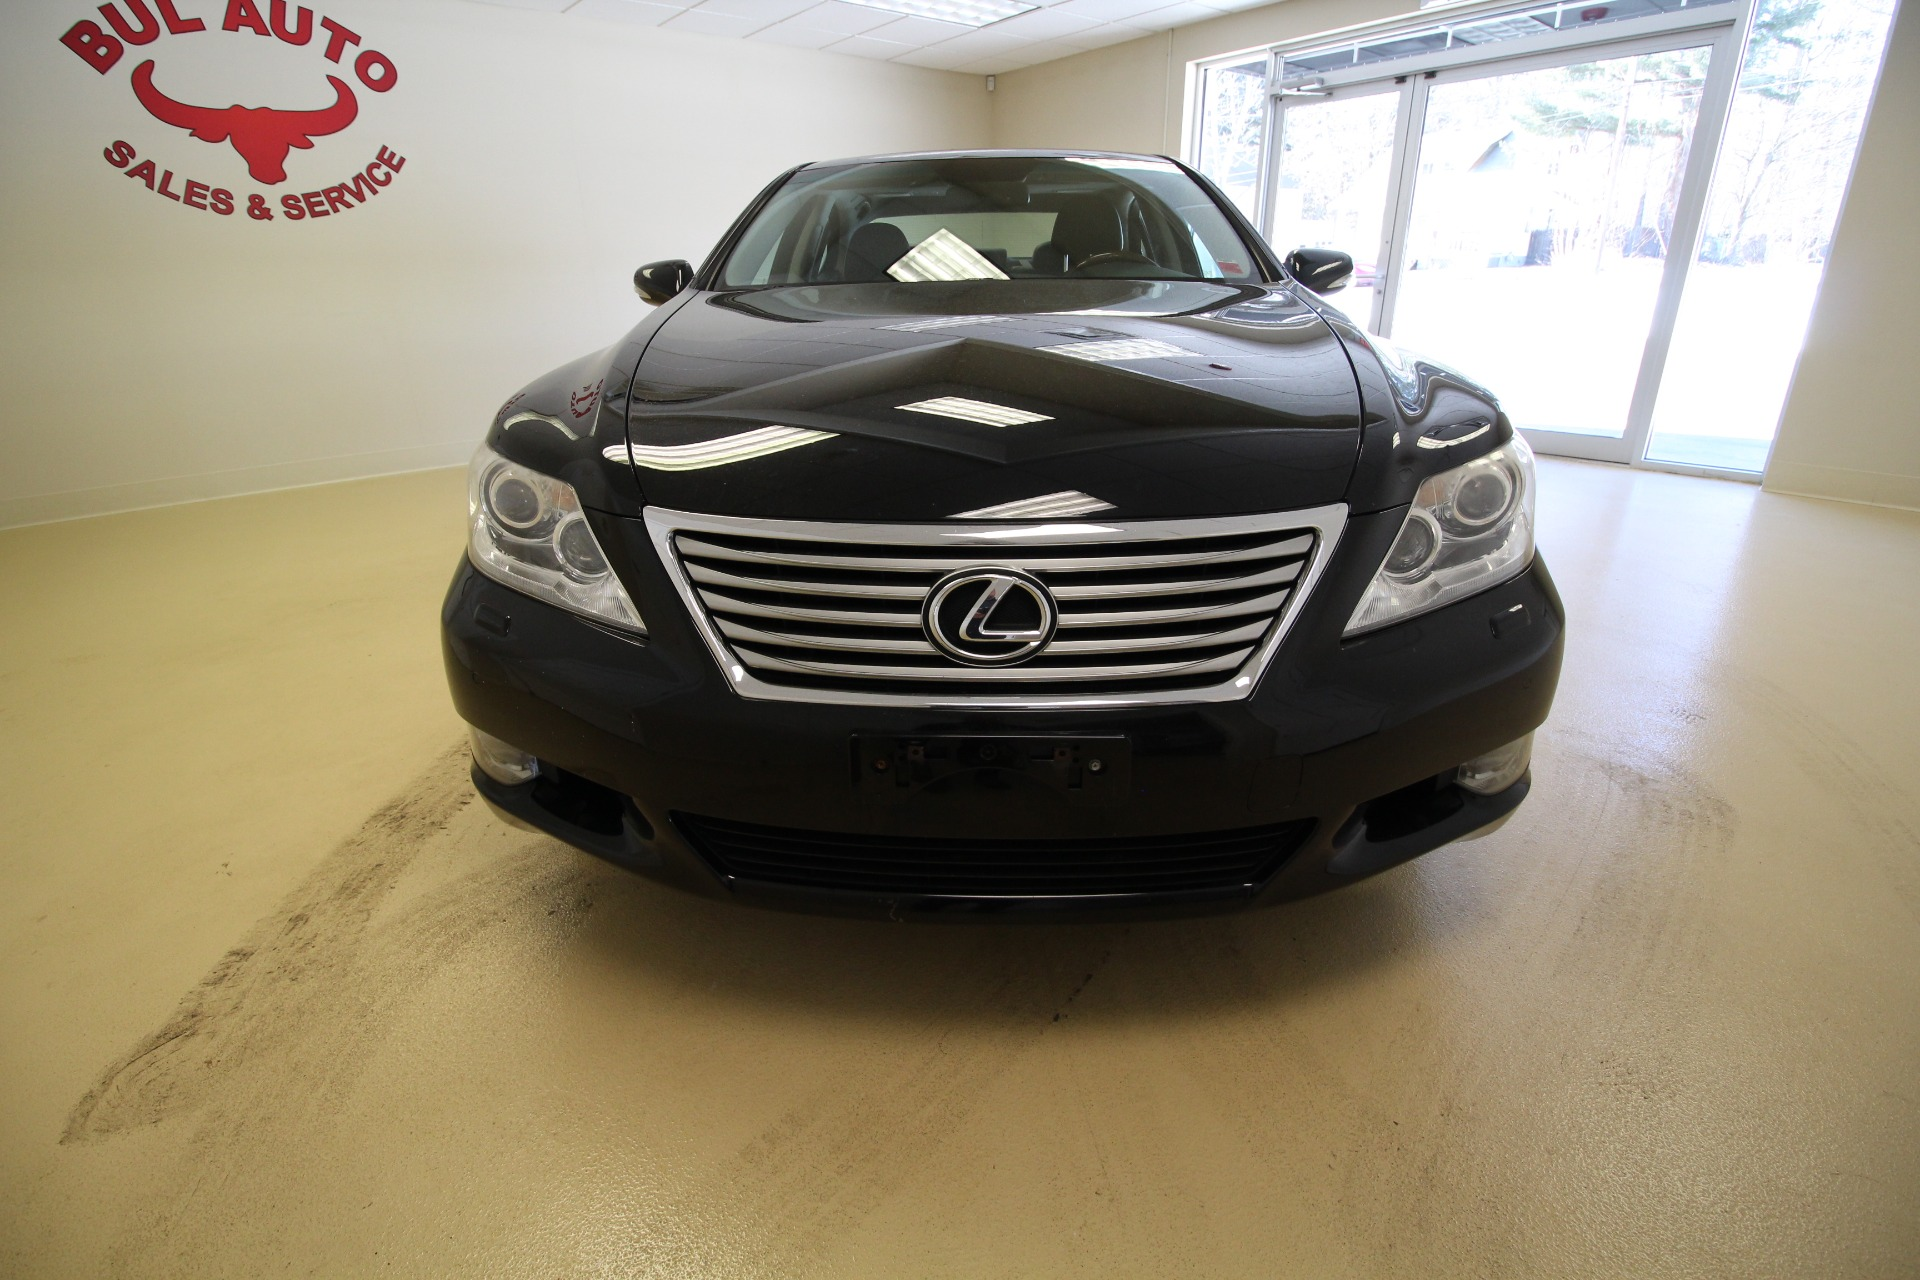 Used 2010 Lexus LS 460 Luxury Sedan AWD very well maintained 90k service | Albany, NY